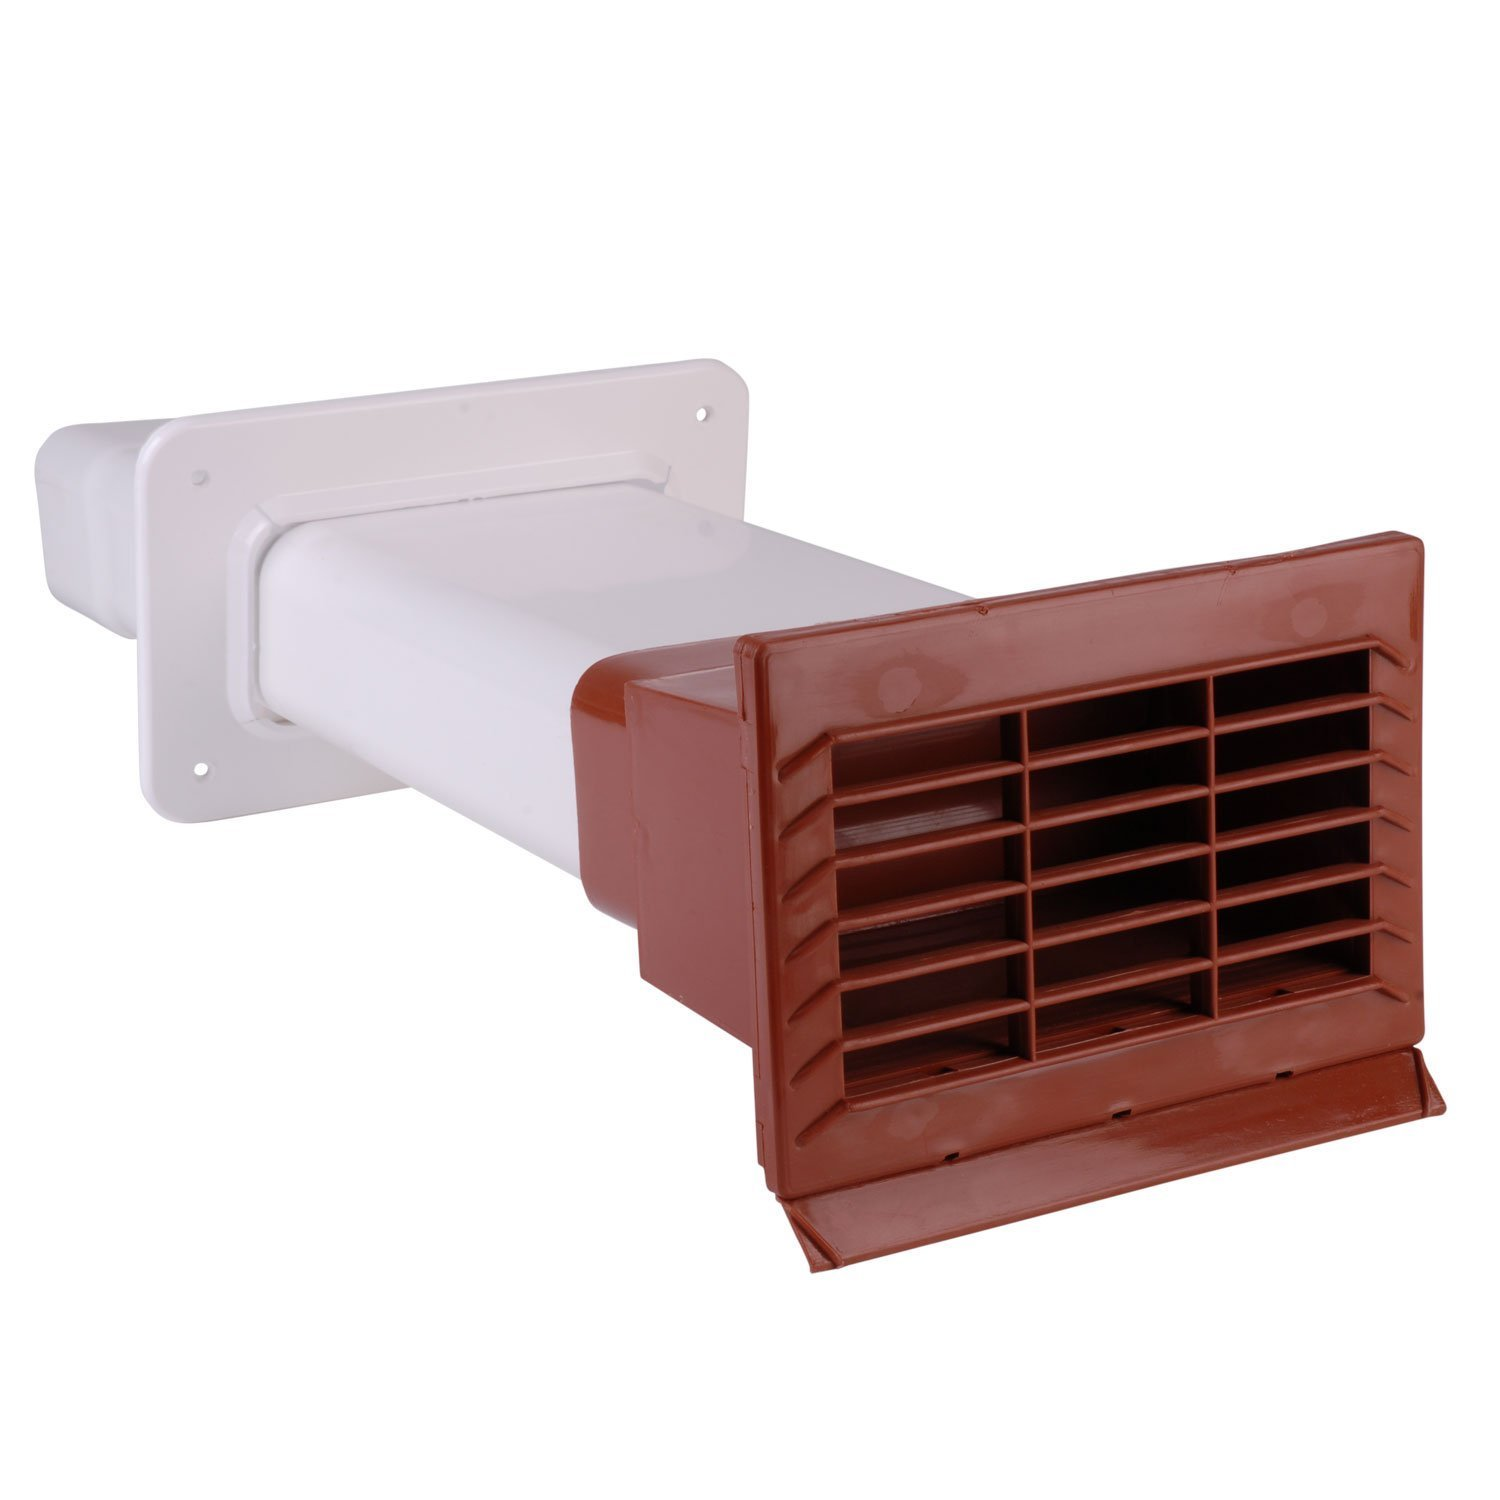 Bielmeier BIELMEIER High Performance Wall Ducting-System 125 Soft/Brick Red 651181 V651181